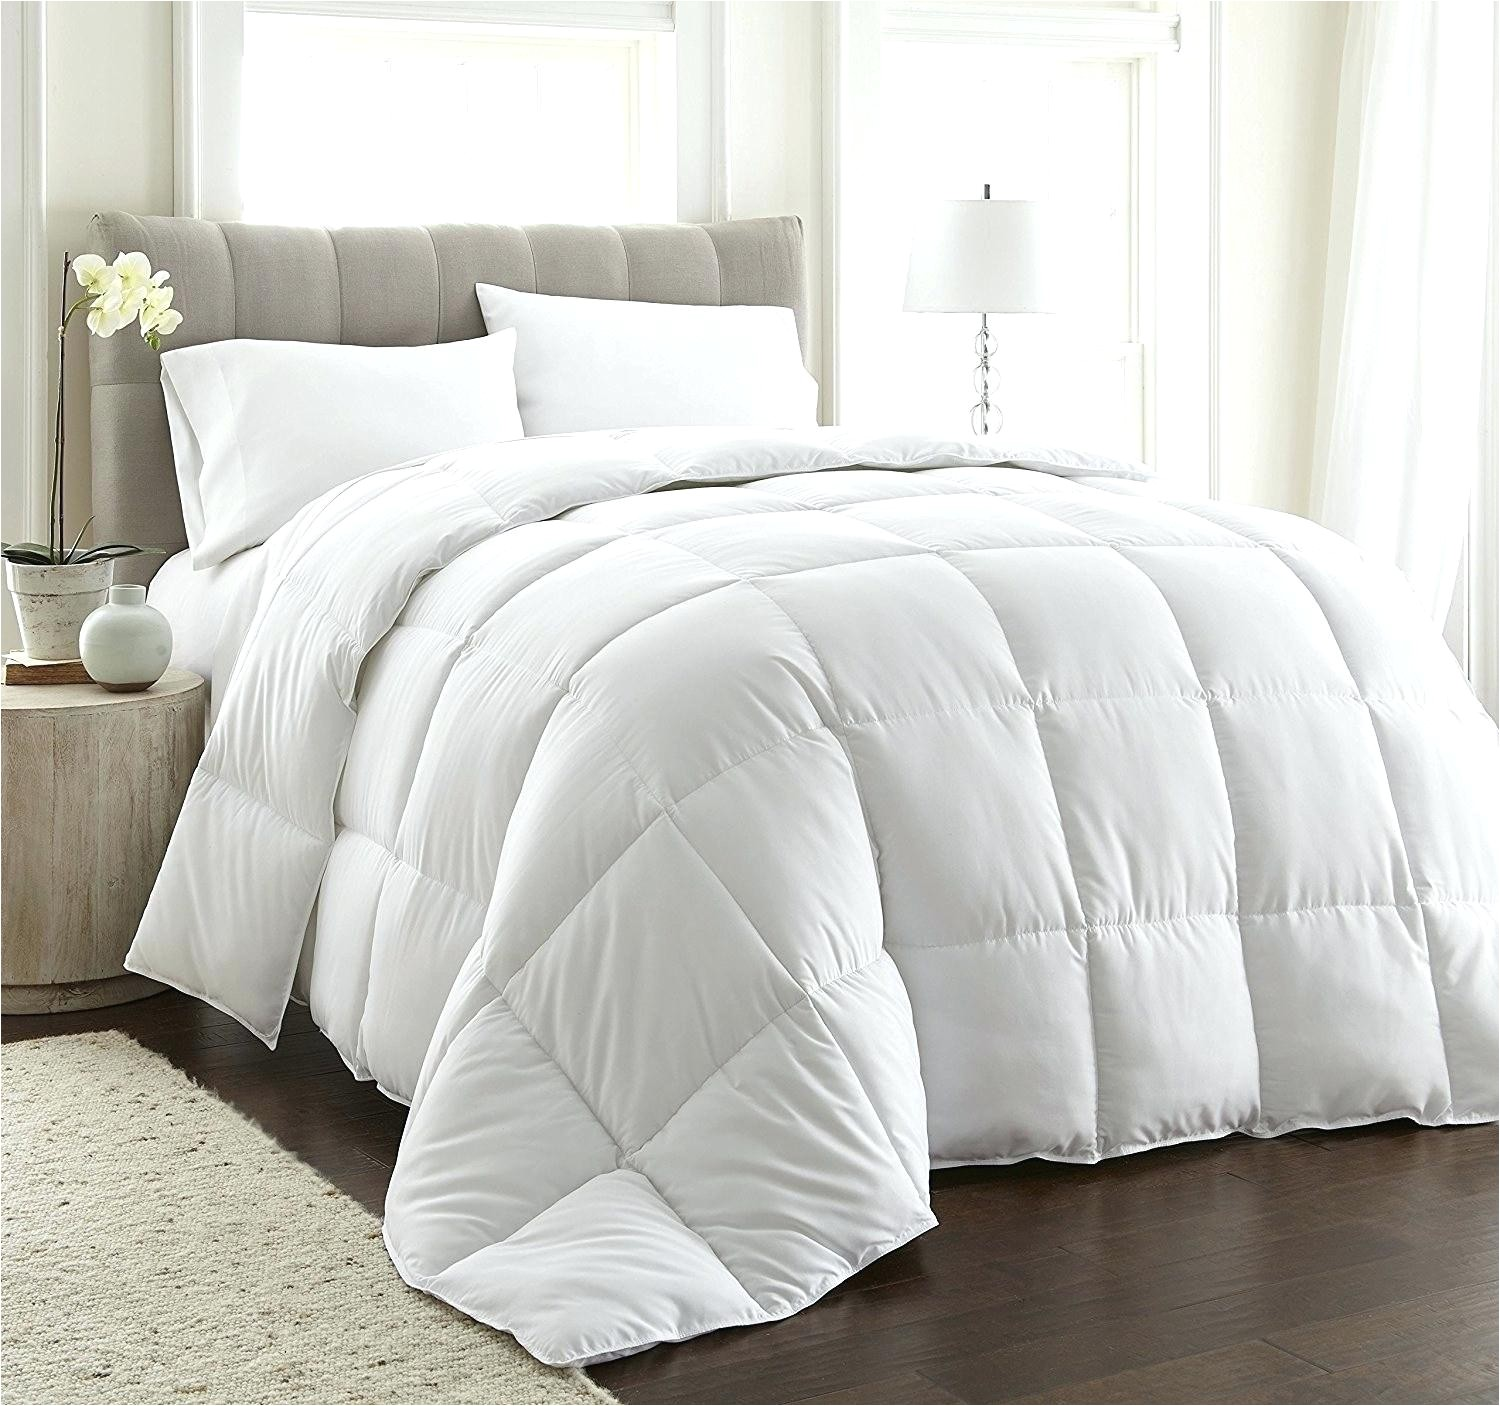 fluffiest down comforter fluffiest down alternative comforter full size of down comforter king lightweight comforter cotton down alternative comforter